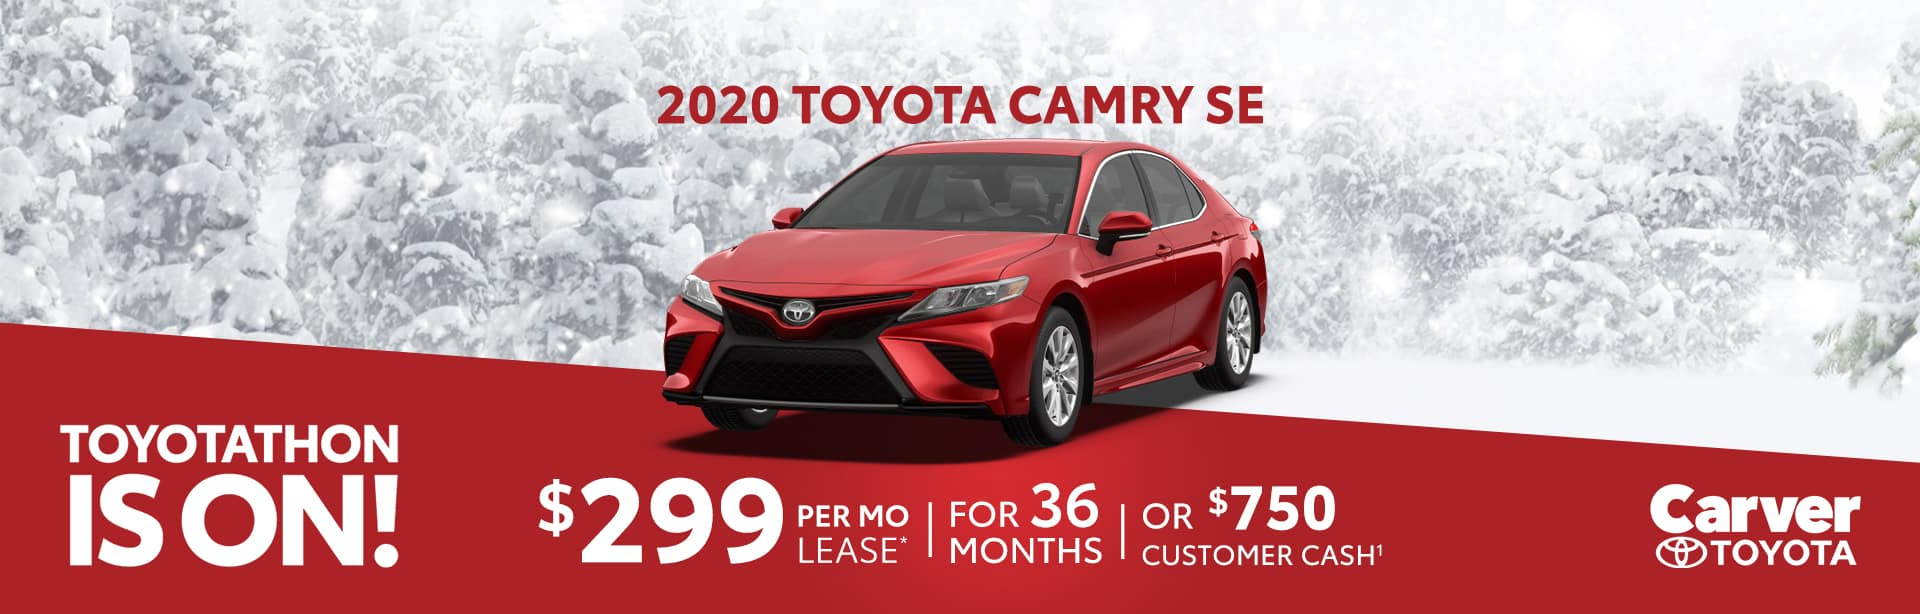 Lease a 2020 Camry for $299 a month near Franklin, Indiana